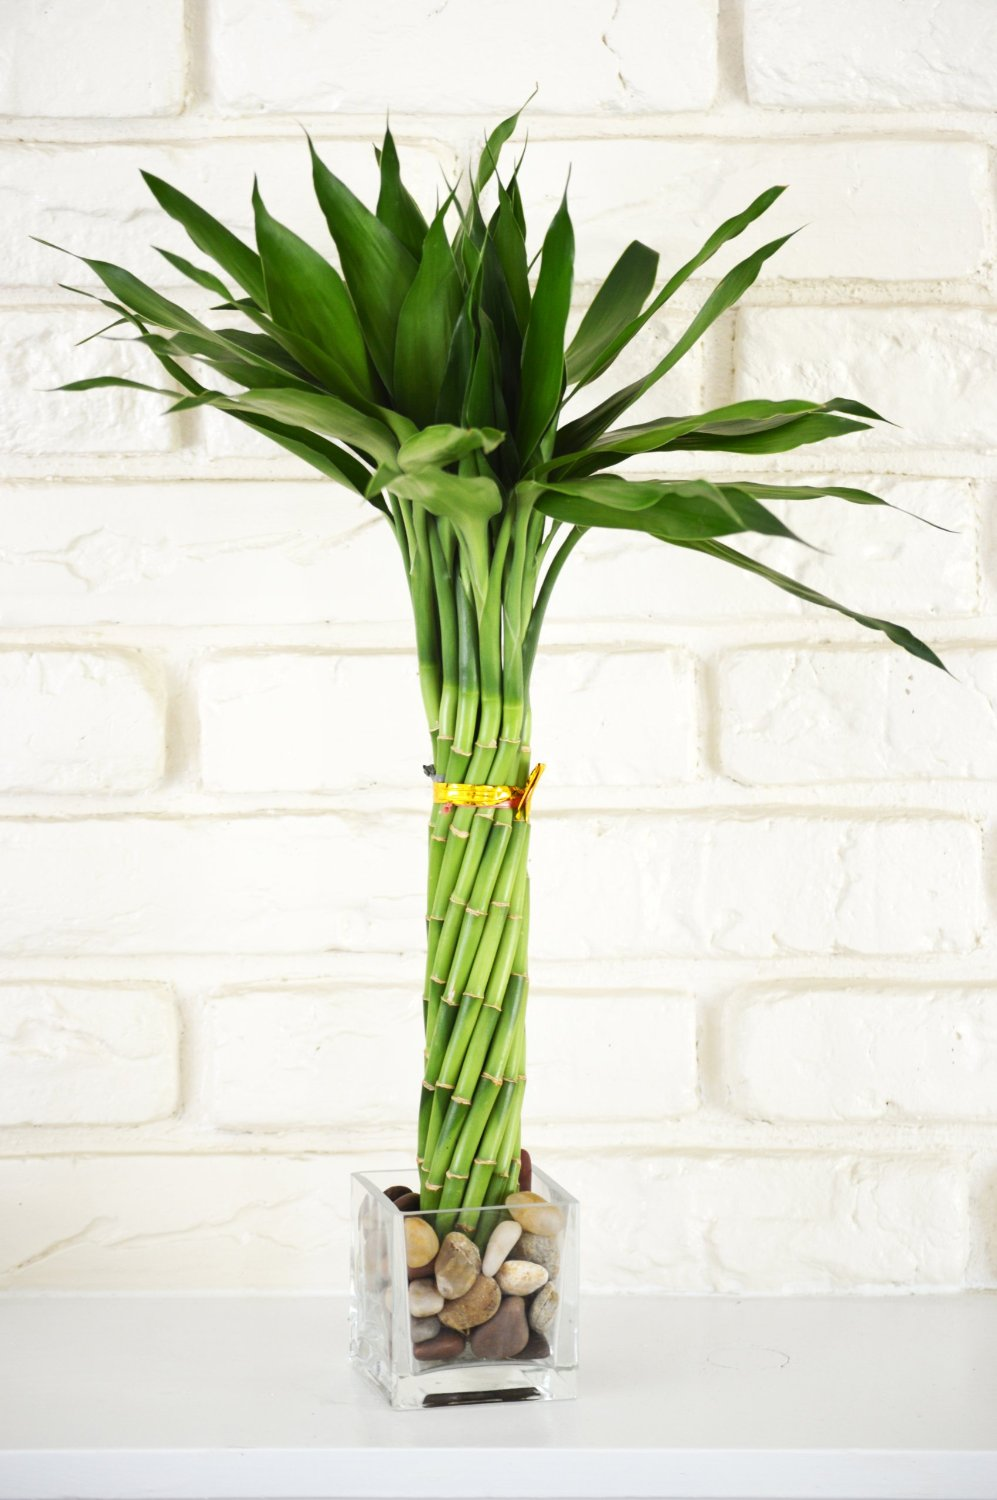 Unique Indoor Plants Simple Effort For Eco Friendly Home: weird plants to grow indoors